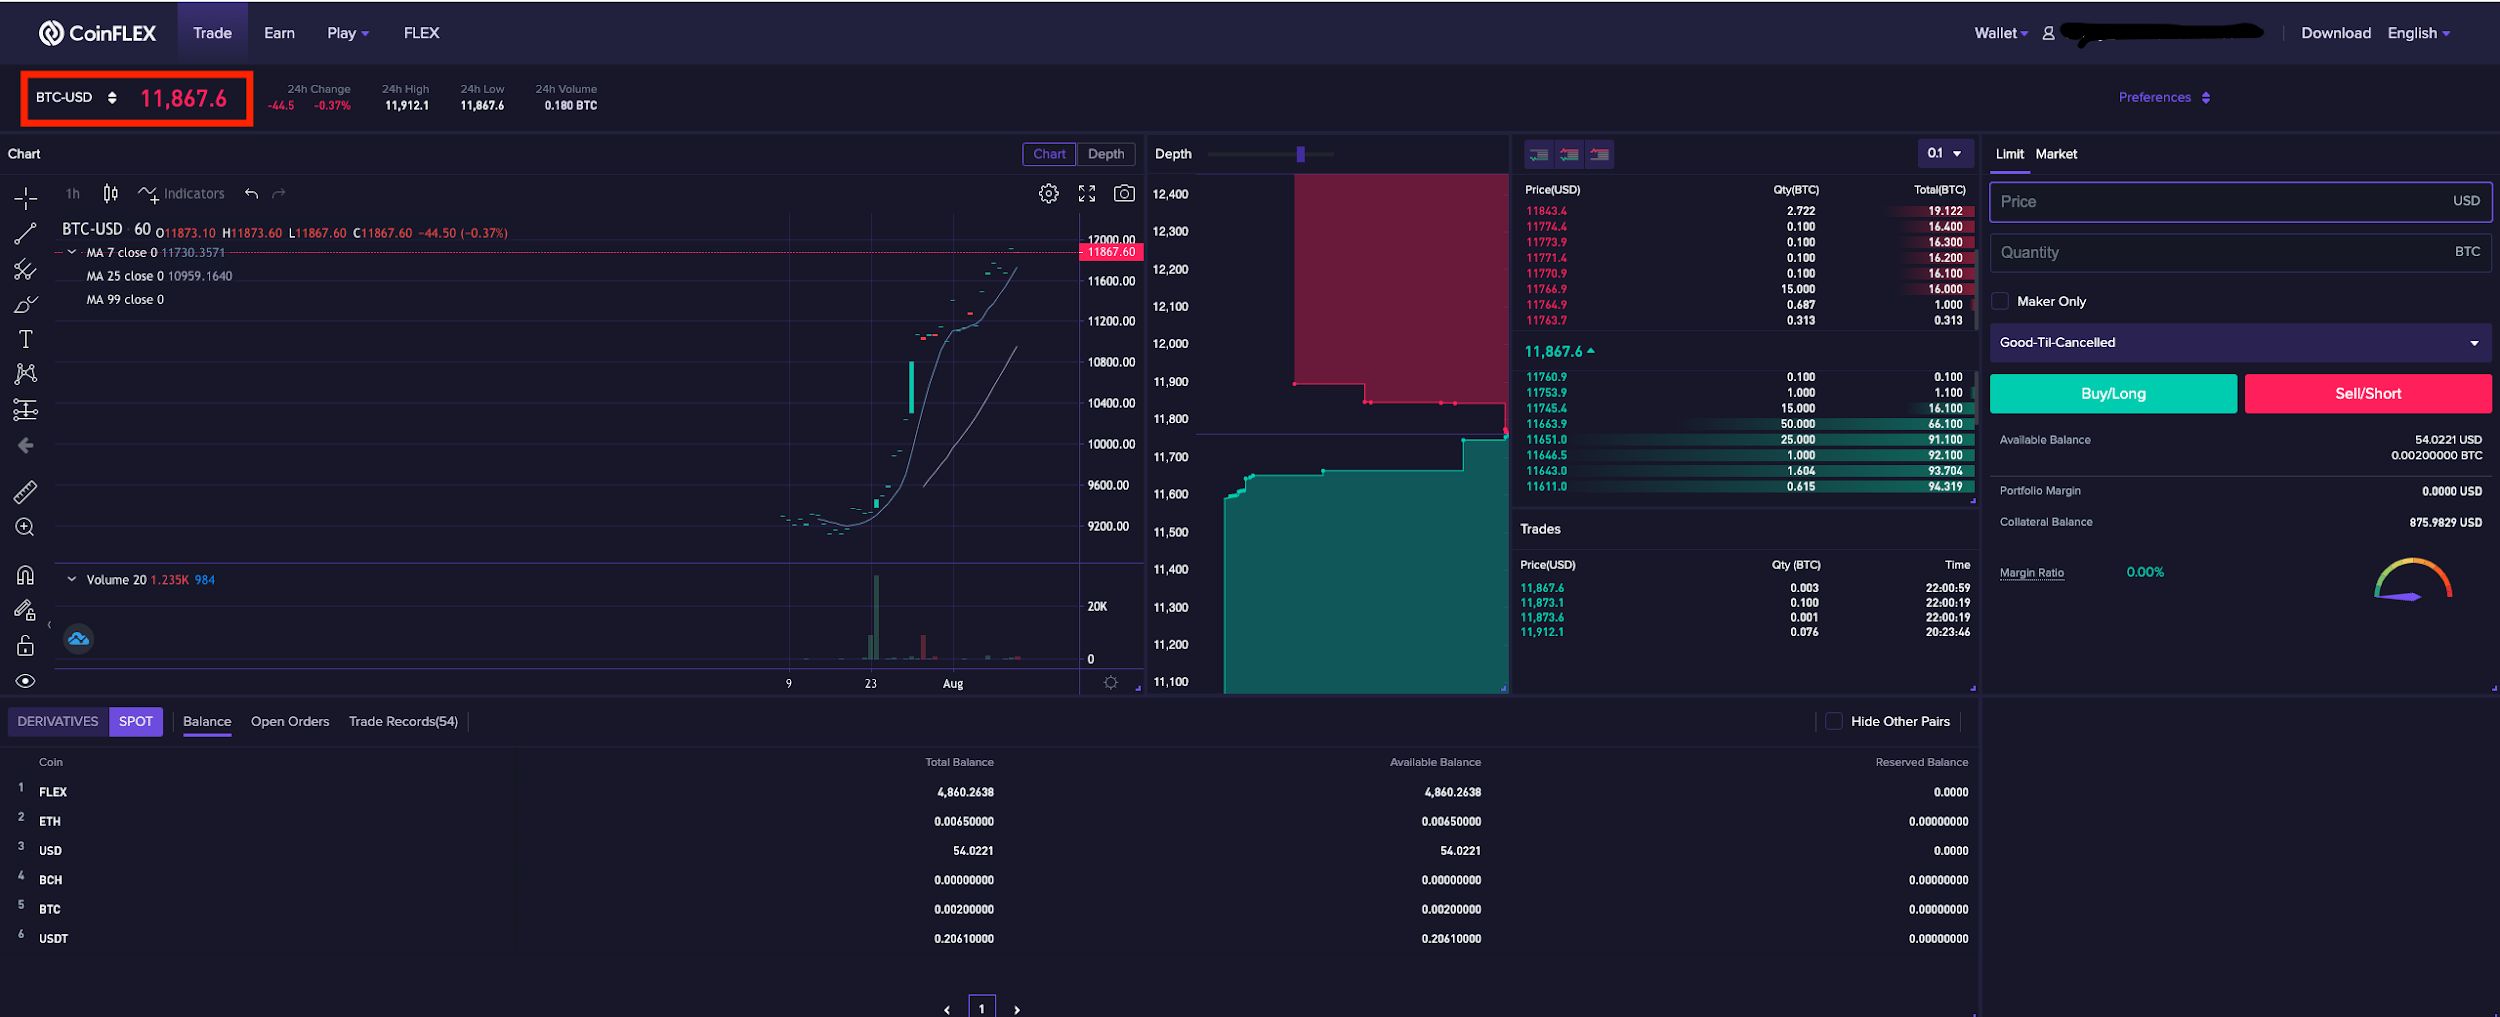 Trade3 1.1.10 Basics of how to trade on CoinFLEX